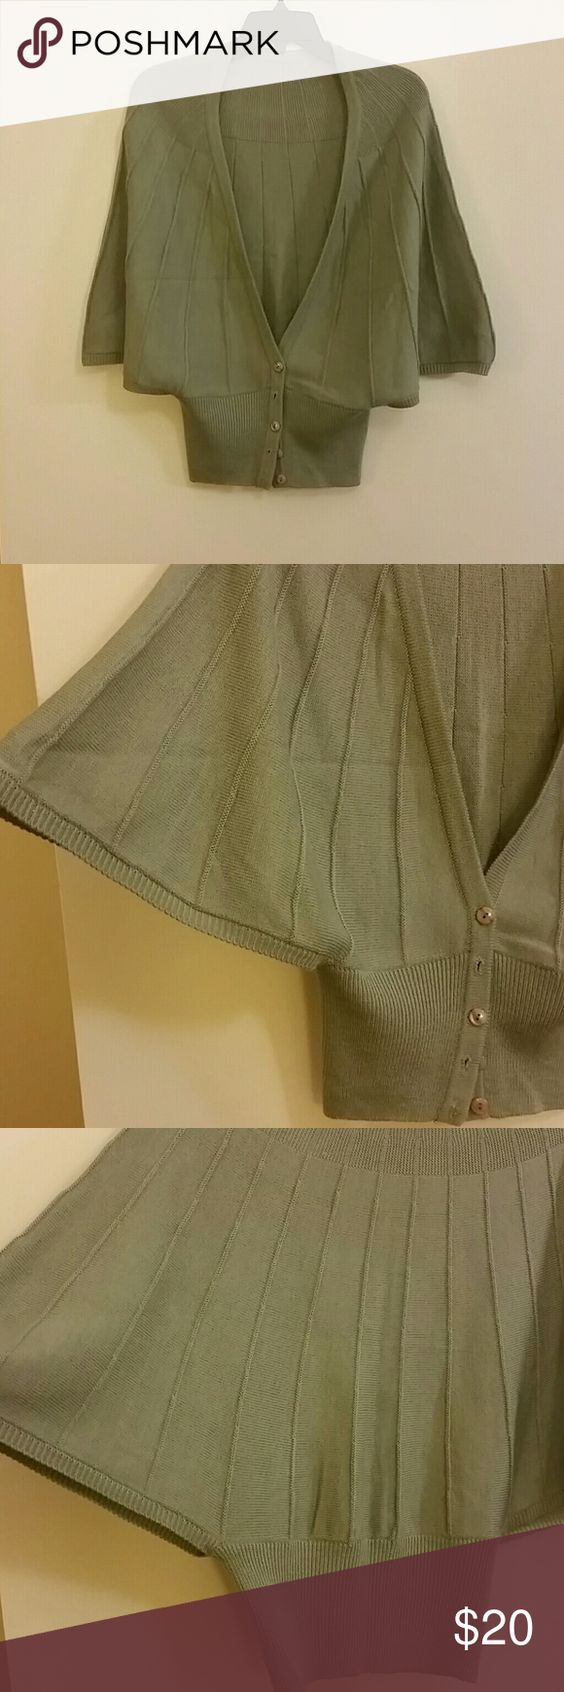 Grey shrug Classy but different race rug great for work great for fun. Button down cardigan Style with bat wings and snug waistline. Sweaters Shrugs & Ponchos